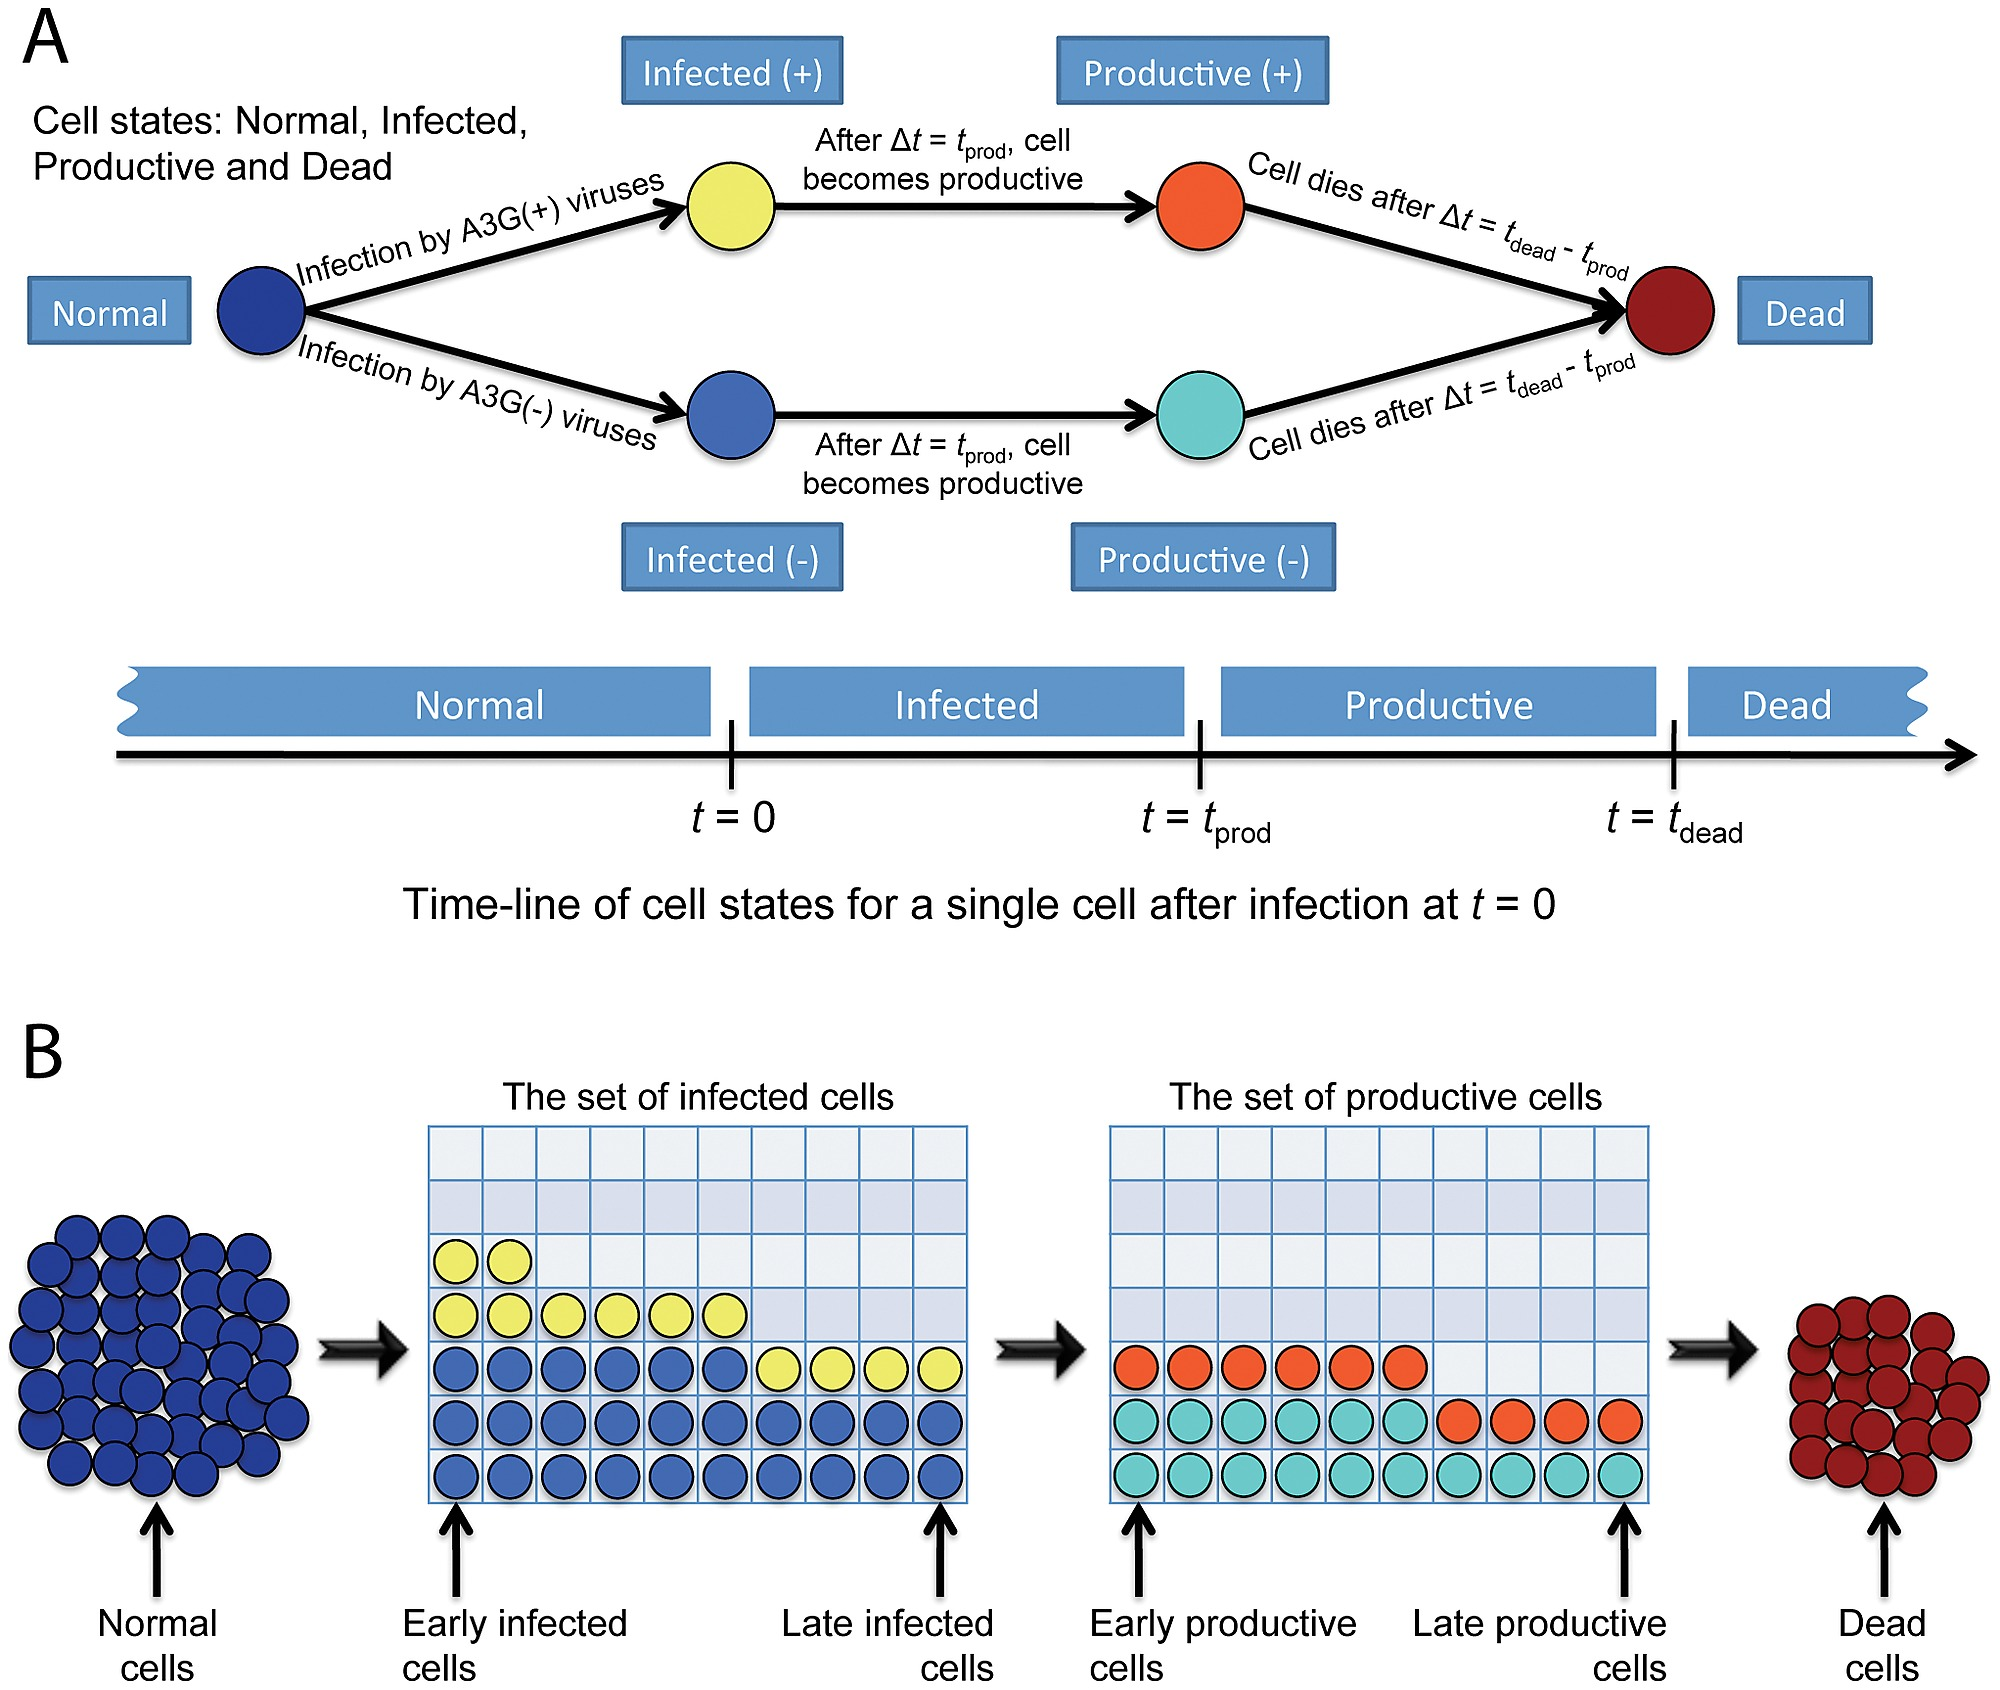 A Schematic Diagram Of Cell States And Snapshot The Circuit Multicellular Model